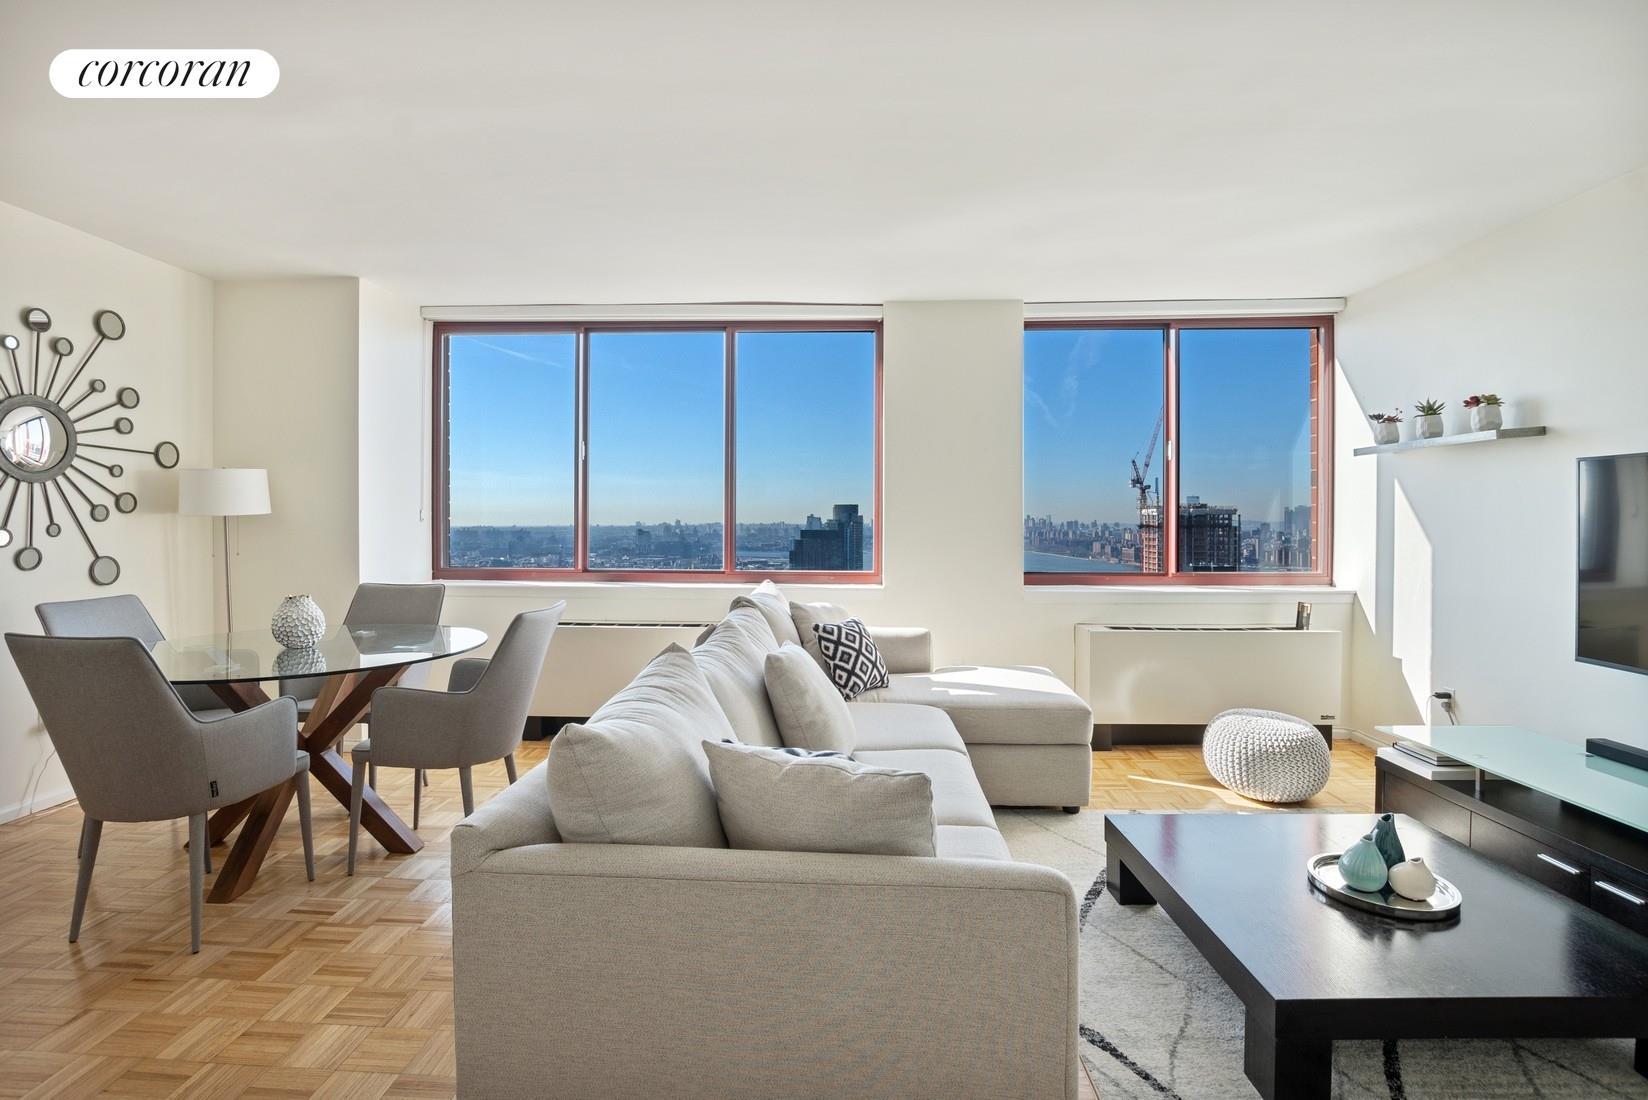 Apartment for sale at 4-74 48th Avenue, Apt PH-3G